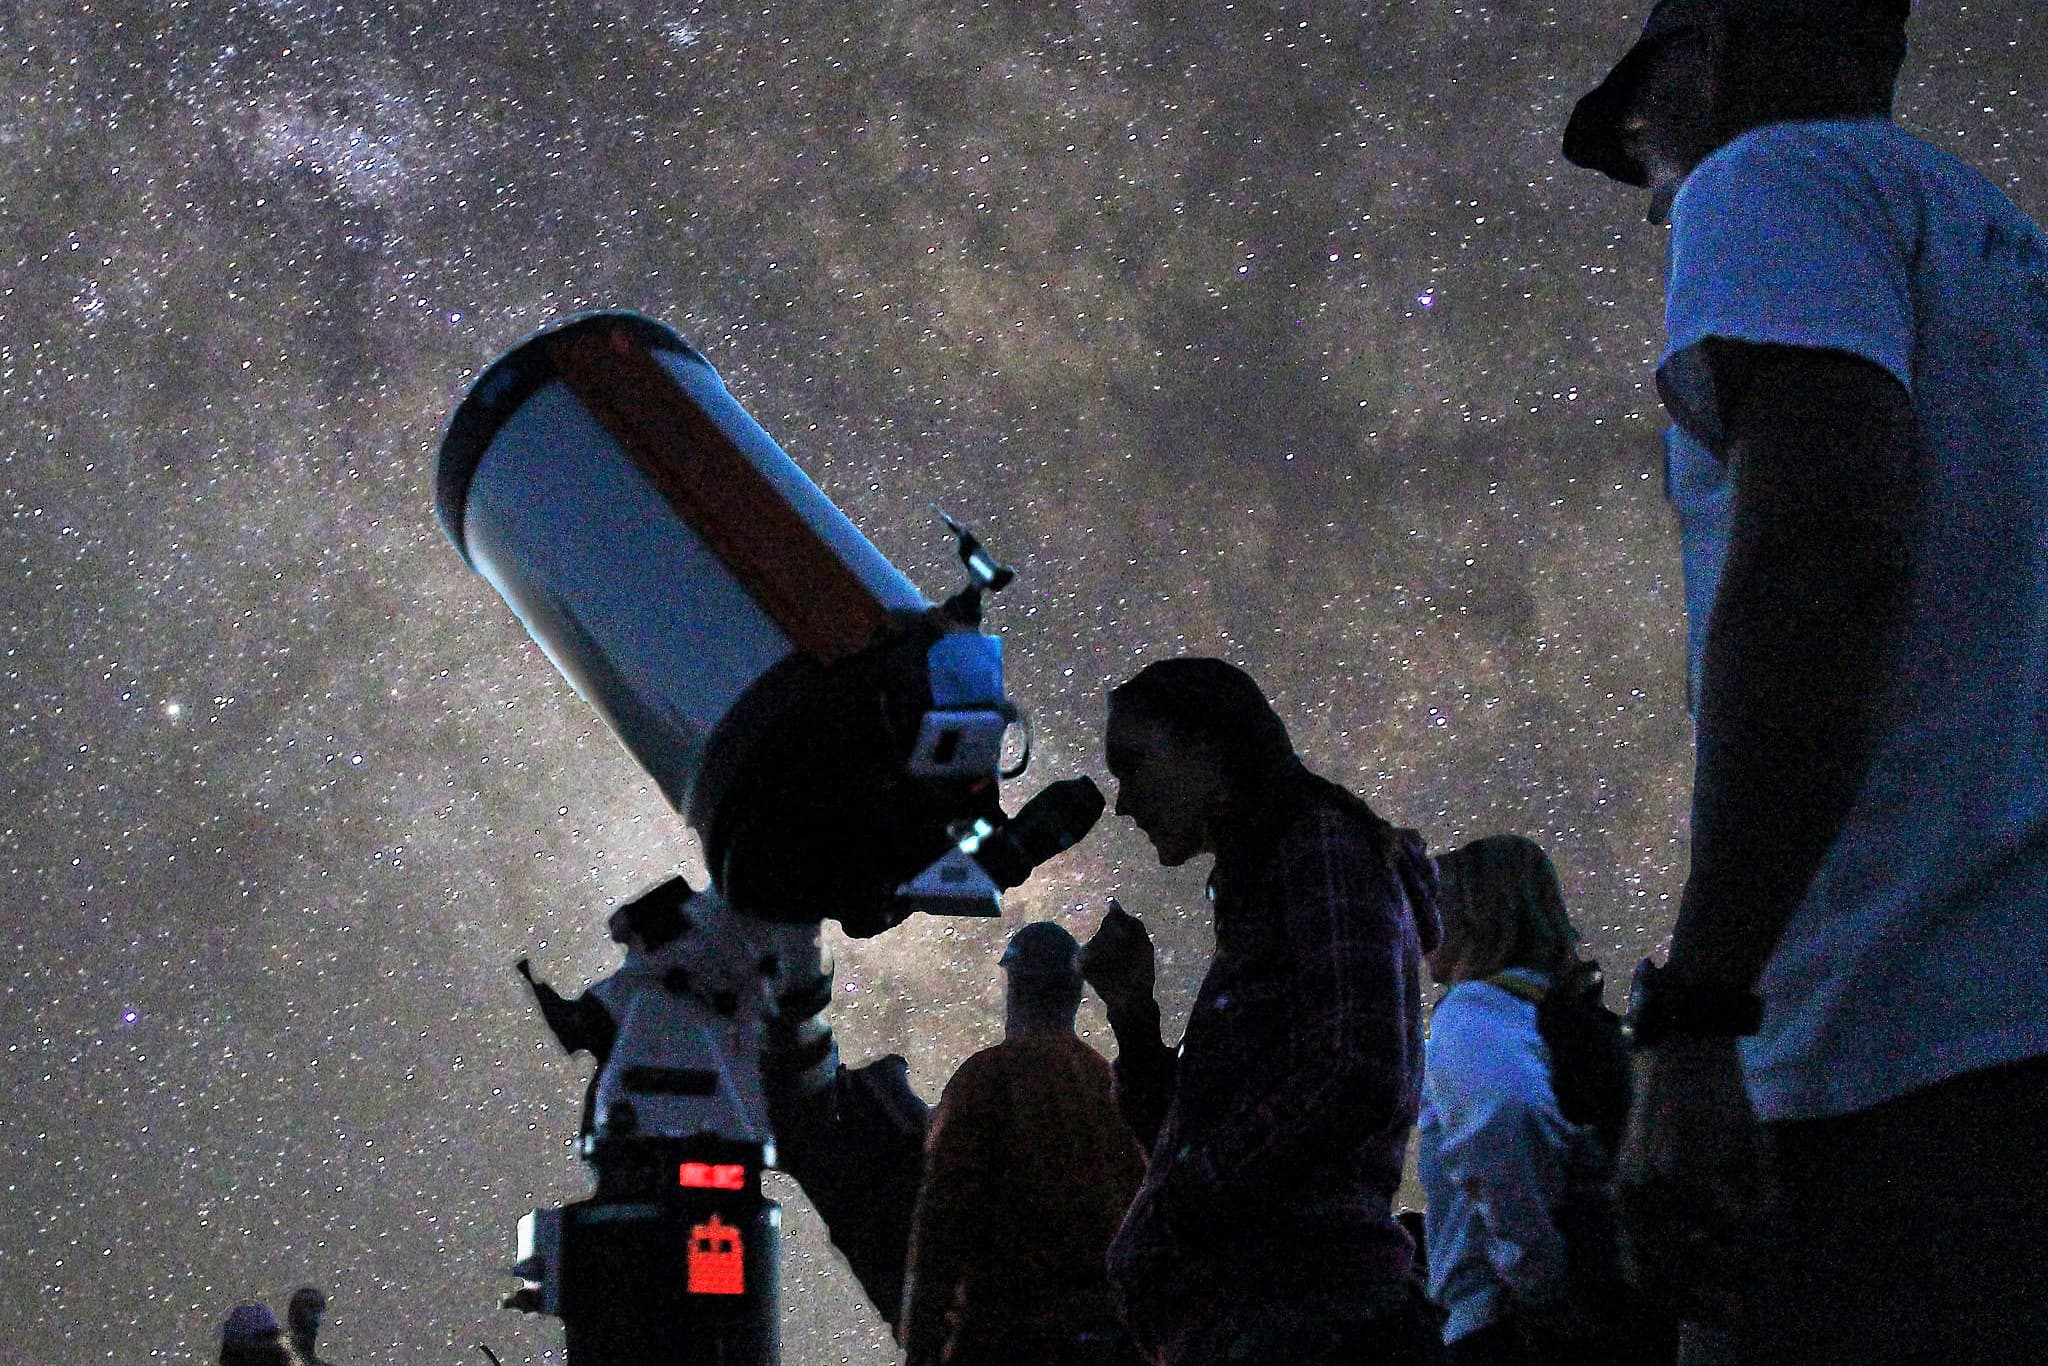 H/O: Star Party at Grand Canyon National Park